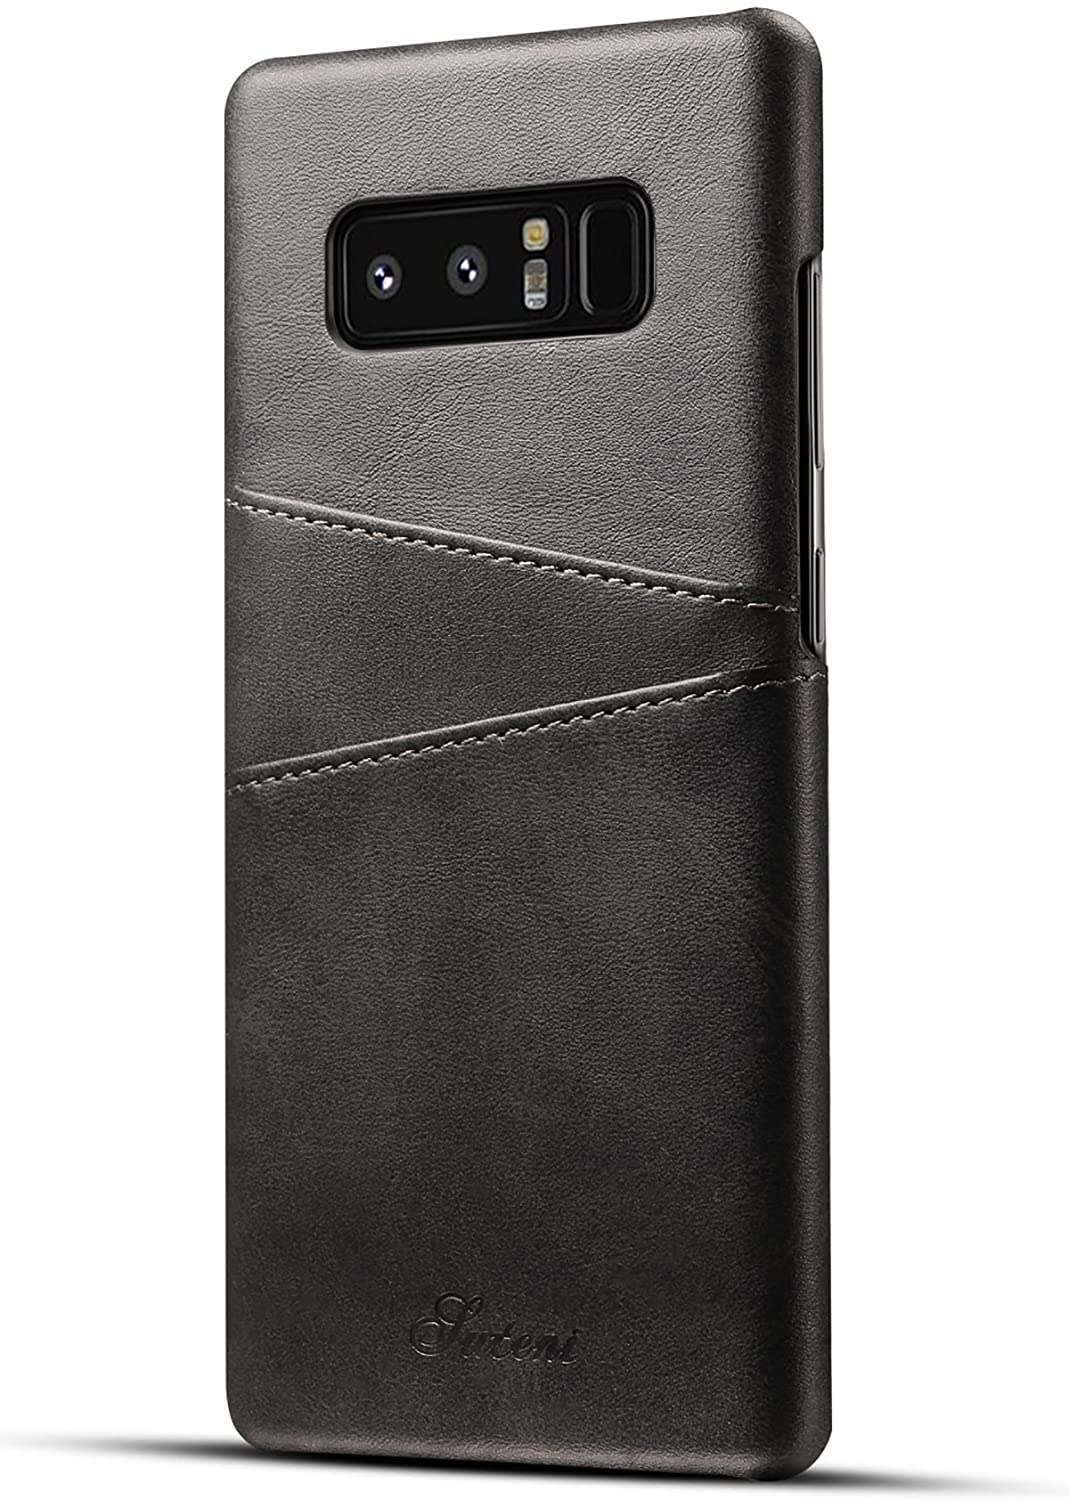 Galaxy Note 8 Case Synthetic Leather Wallet Slim Cover with Card Holder Slots